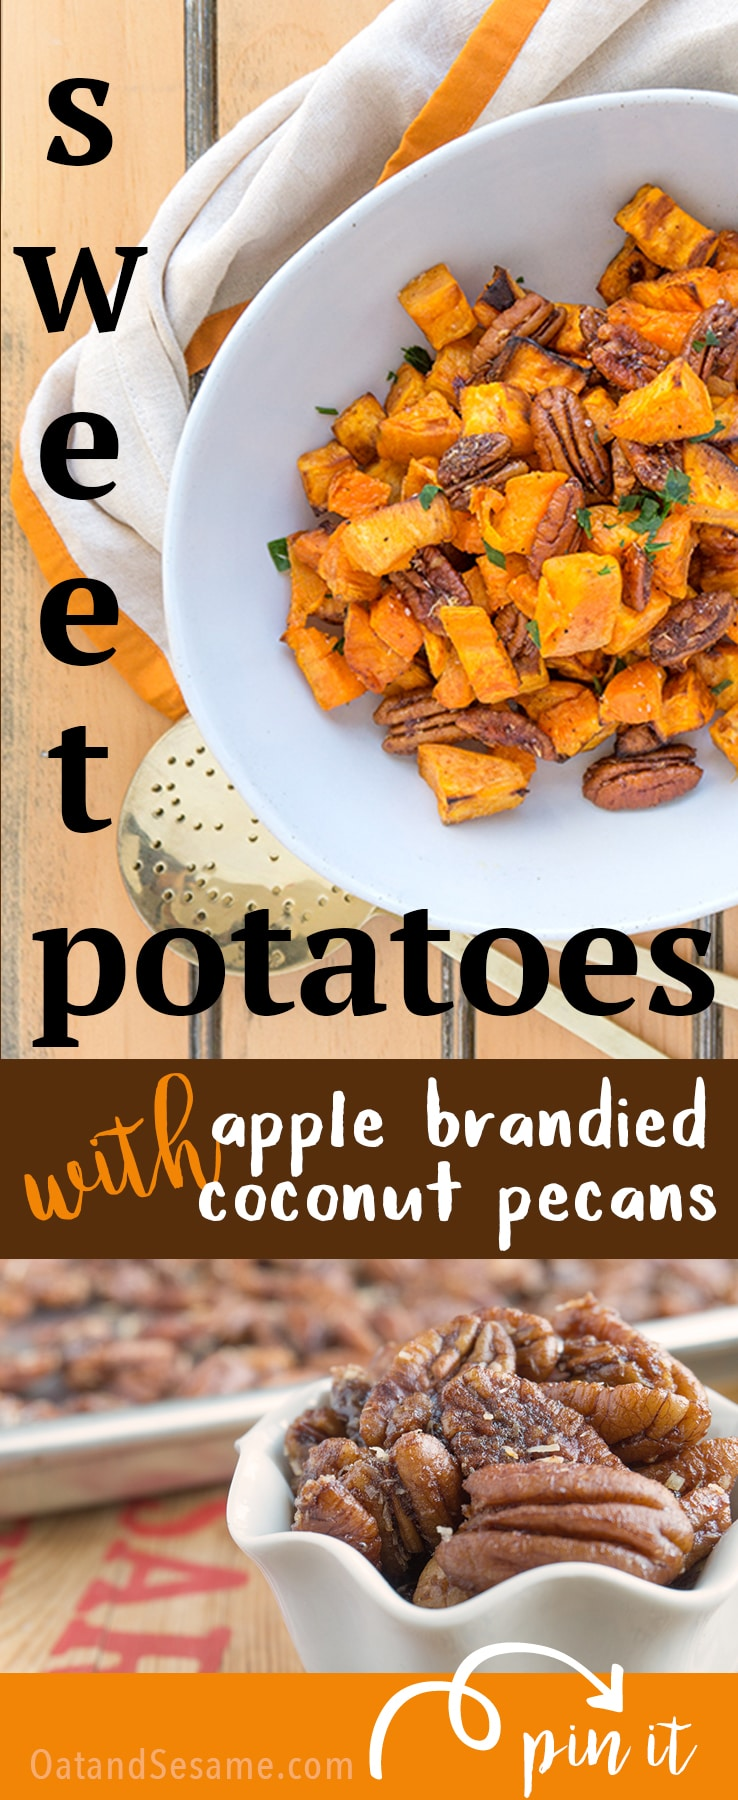 Roasted Sweet Potatoes with Apple Brandied Coconut Pecans - ramp up your Thanksgiving game | SWEET POTATOES | THANKSGIVING | CANDIED PECANS | Recipe at OatandSesame.com | Recipe at OatandSesame.com